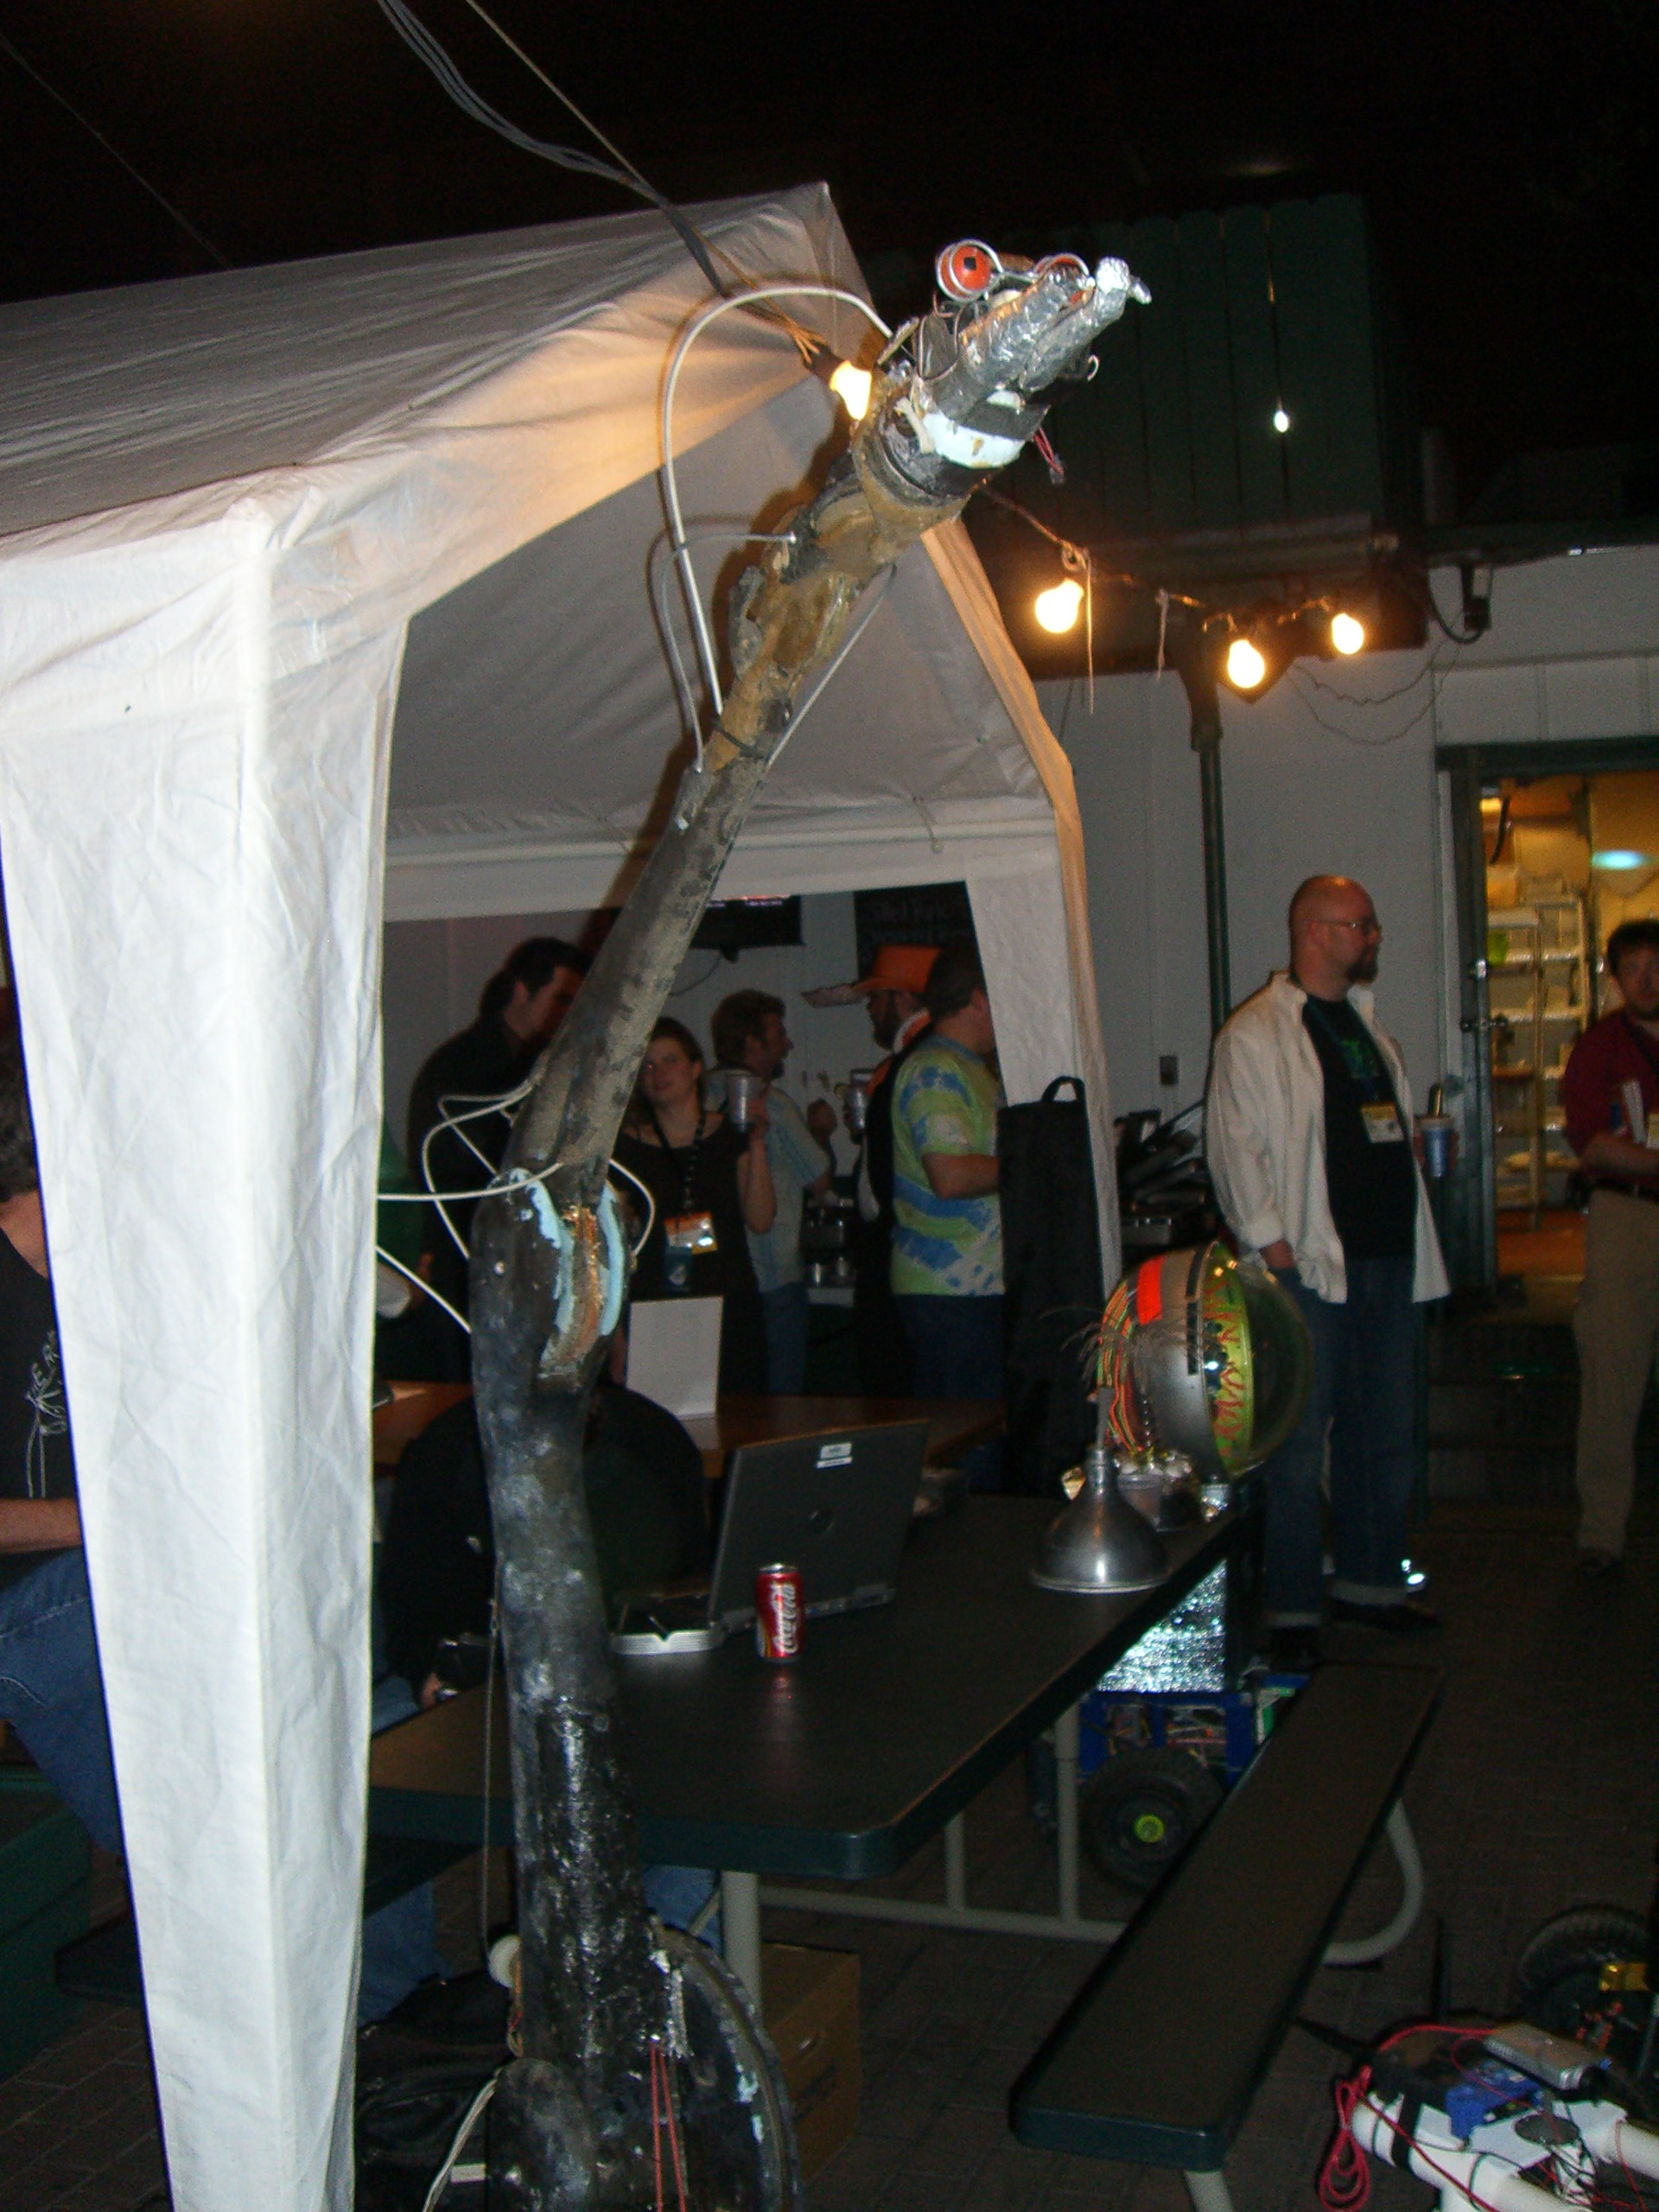 A robotic snake-like sculpture at the Robot Group booth